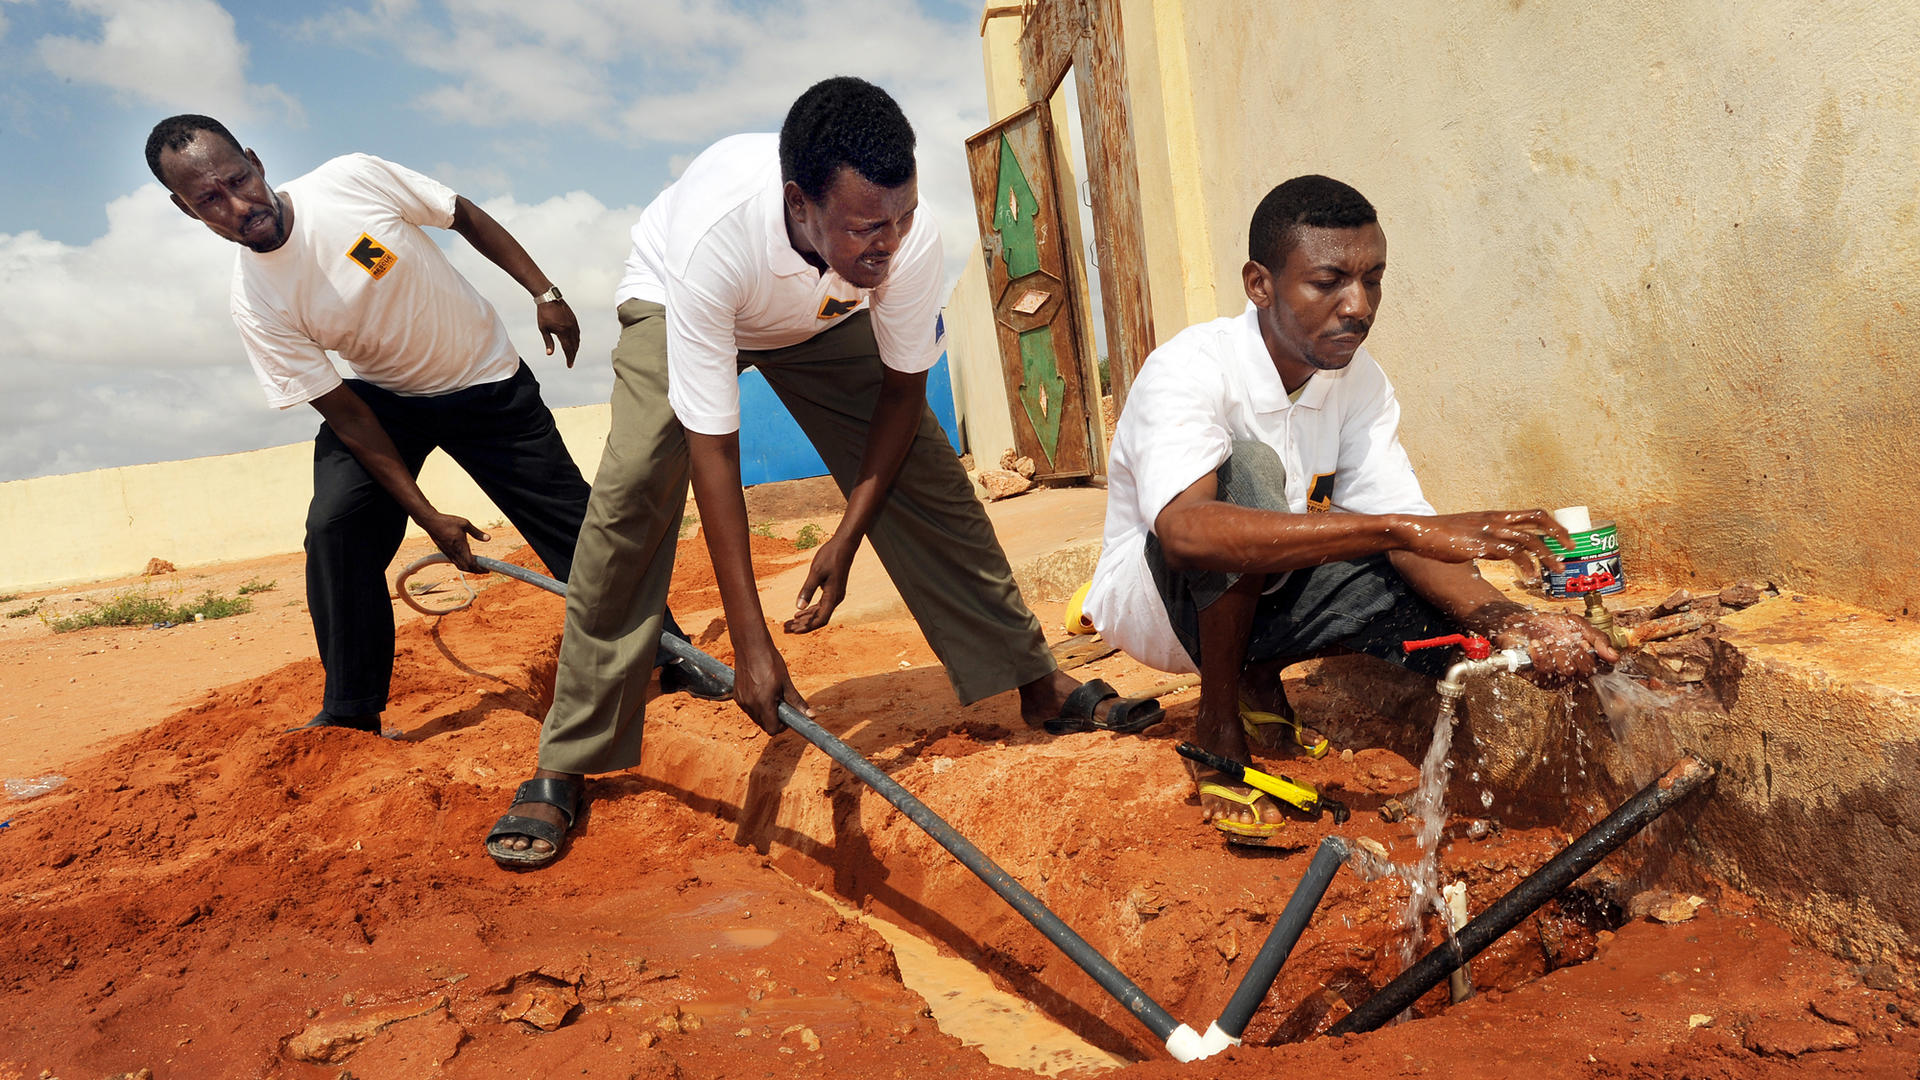 An IRC team installs water to a primary school in Galkayo, Somalia.